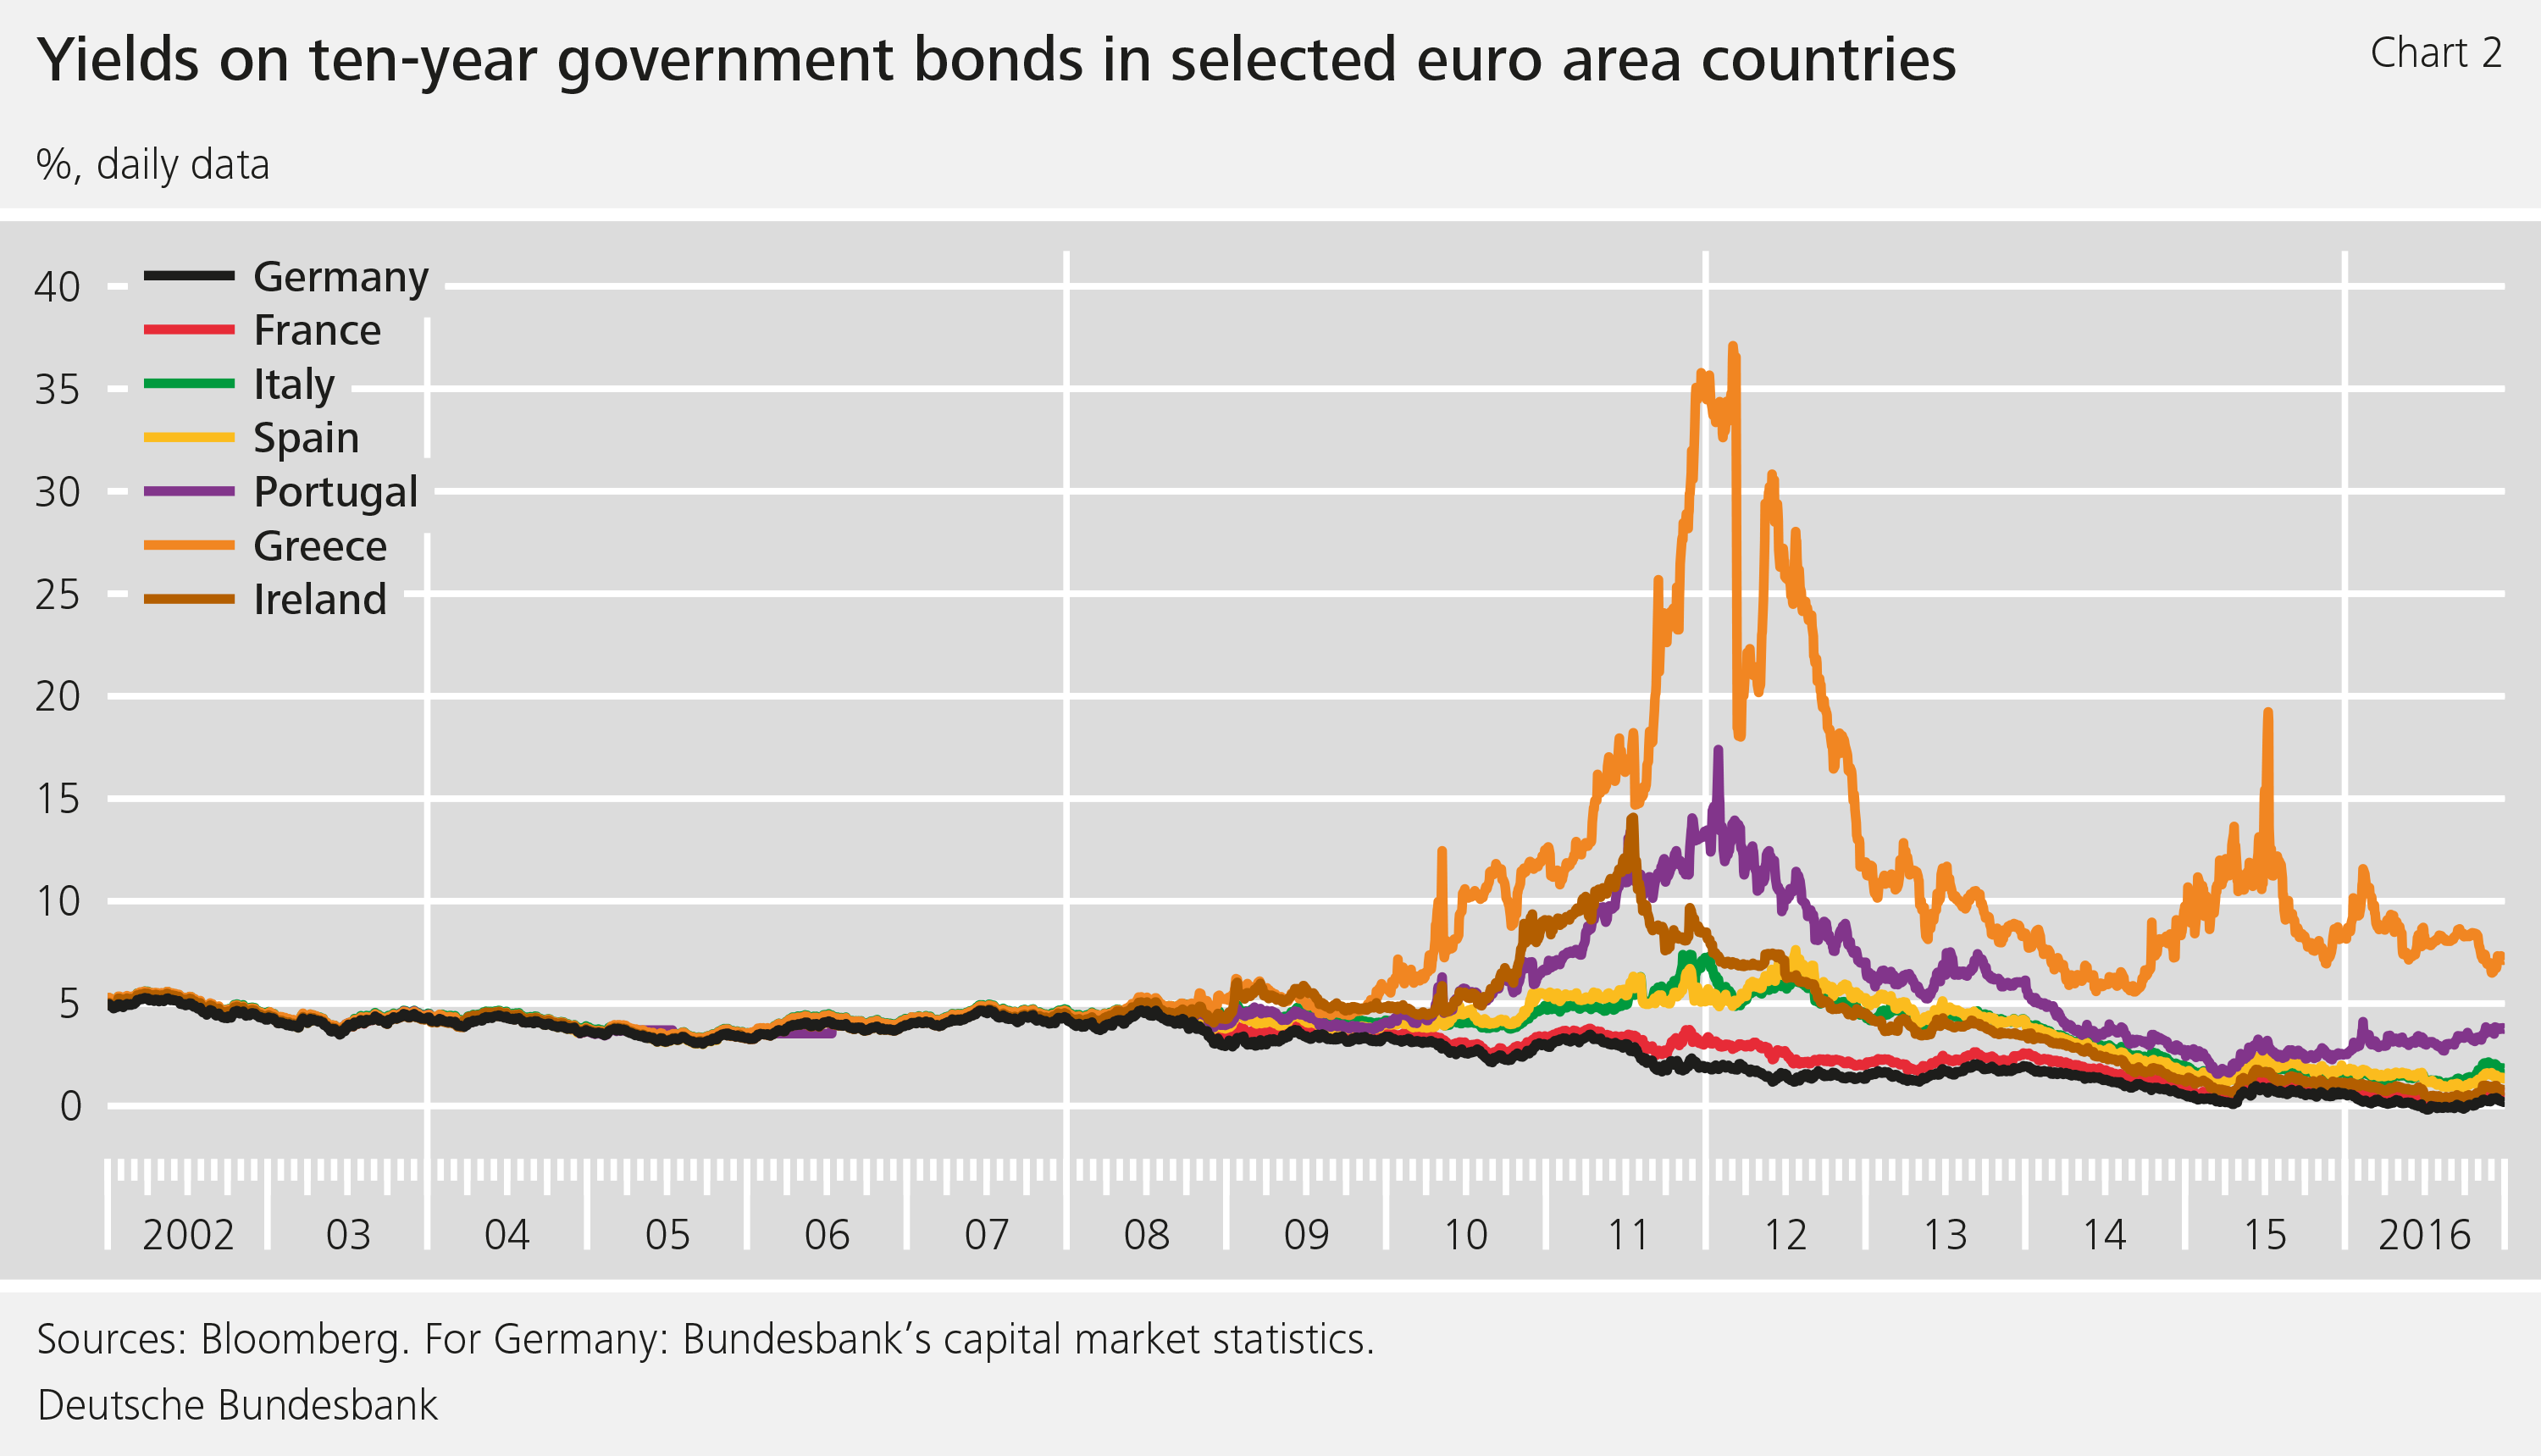 Chart 2: Yields on ten-year government bonds in selected euro area countries